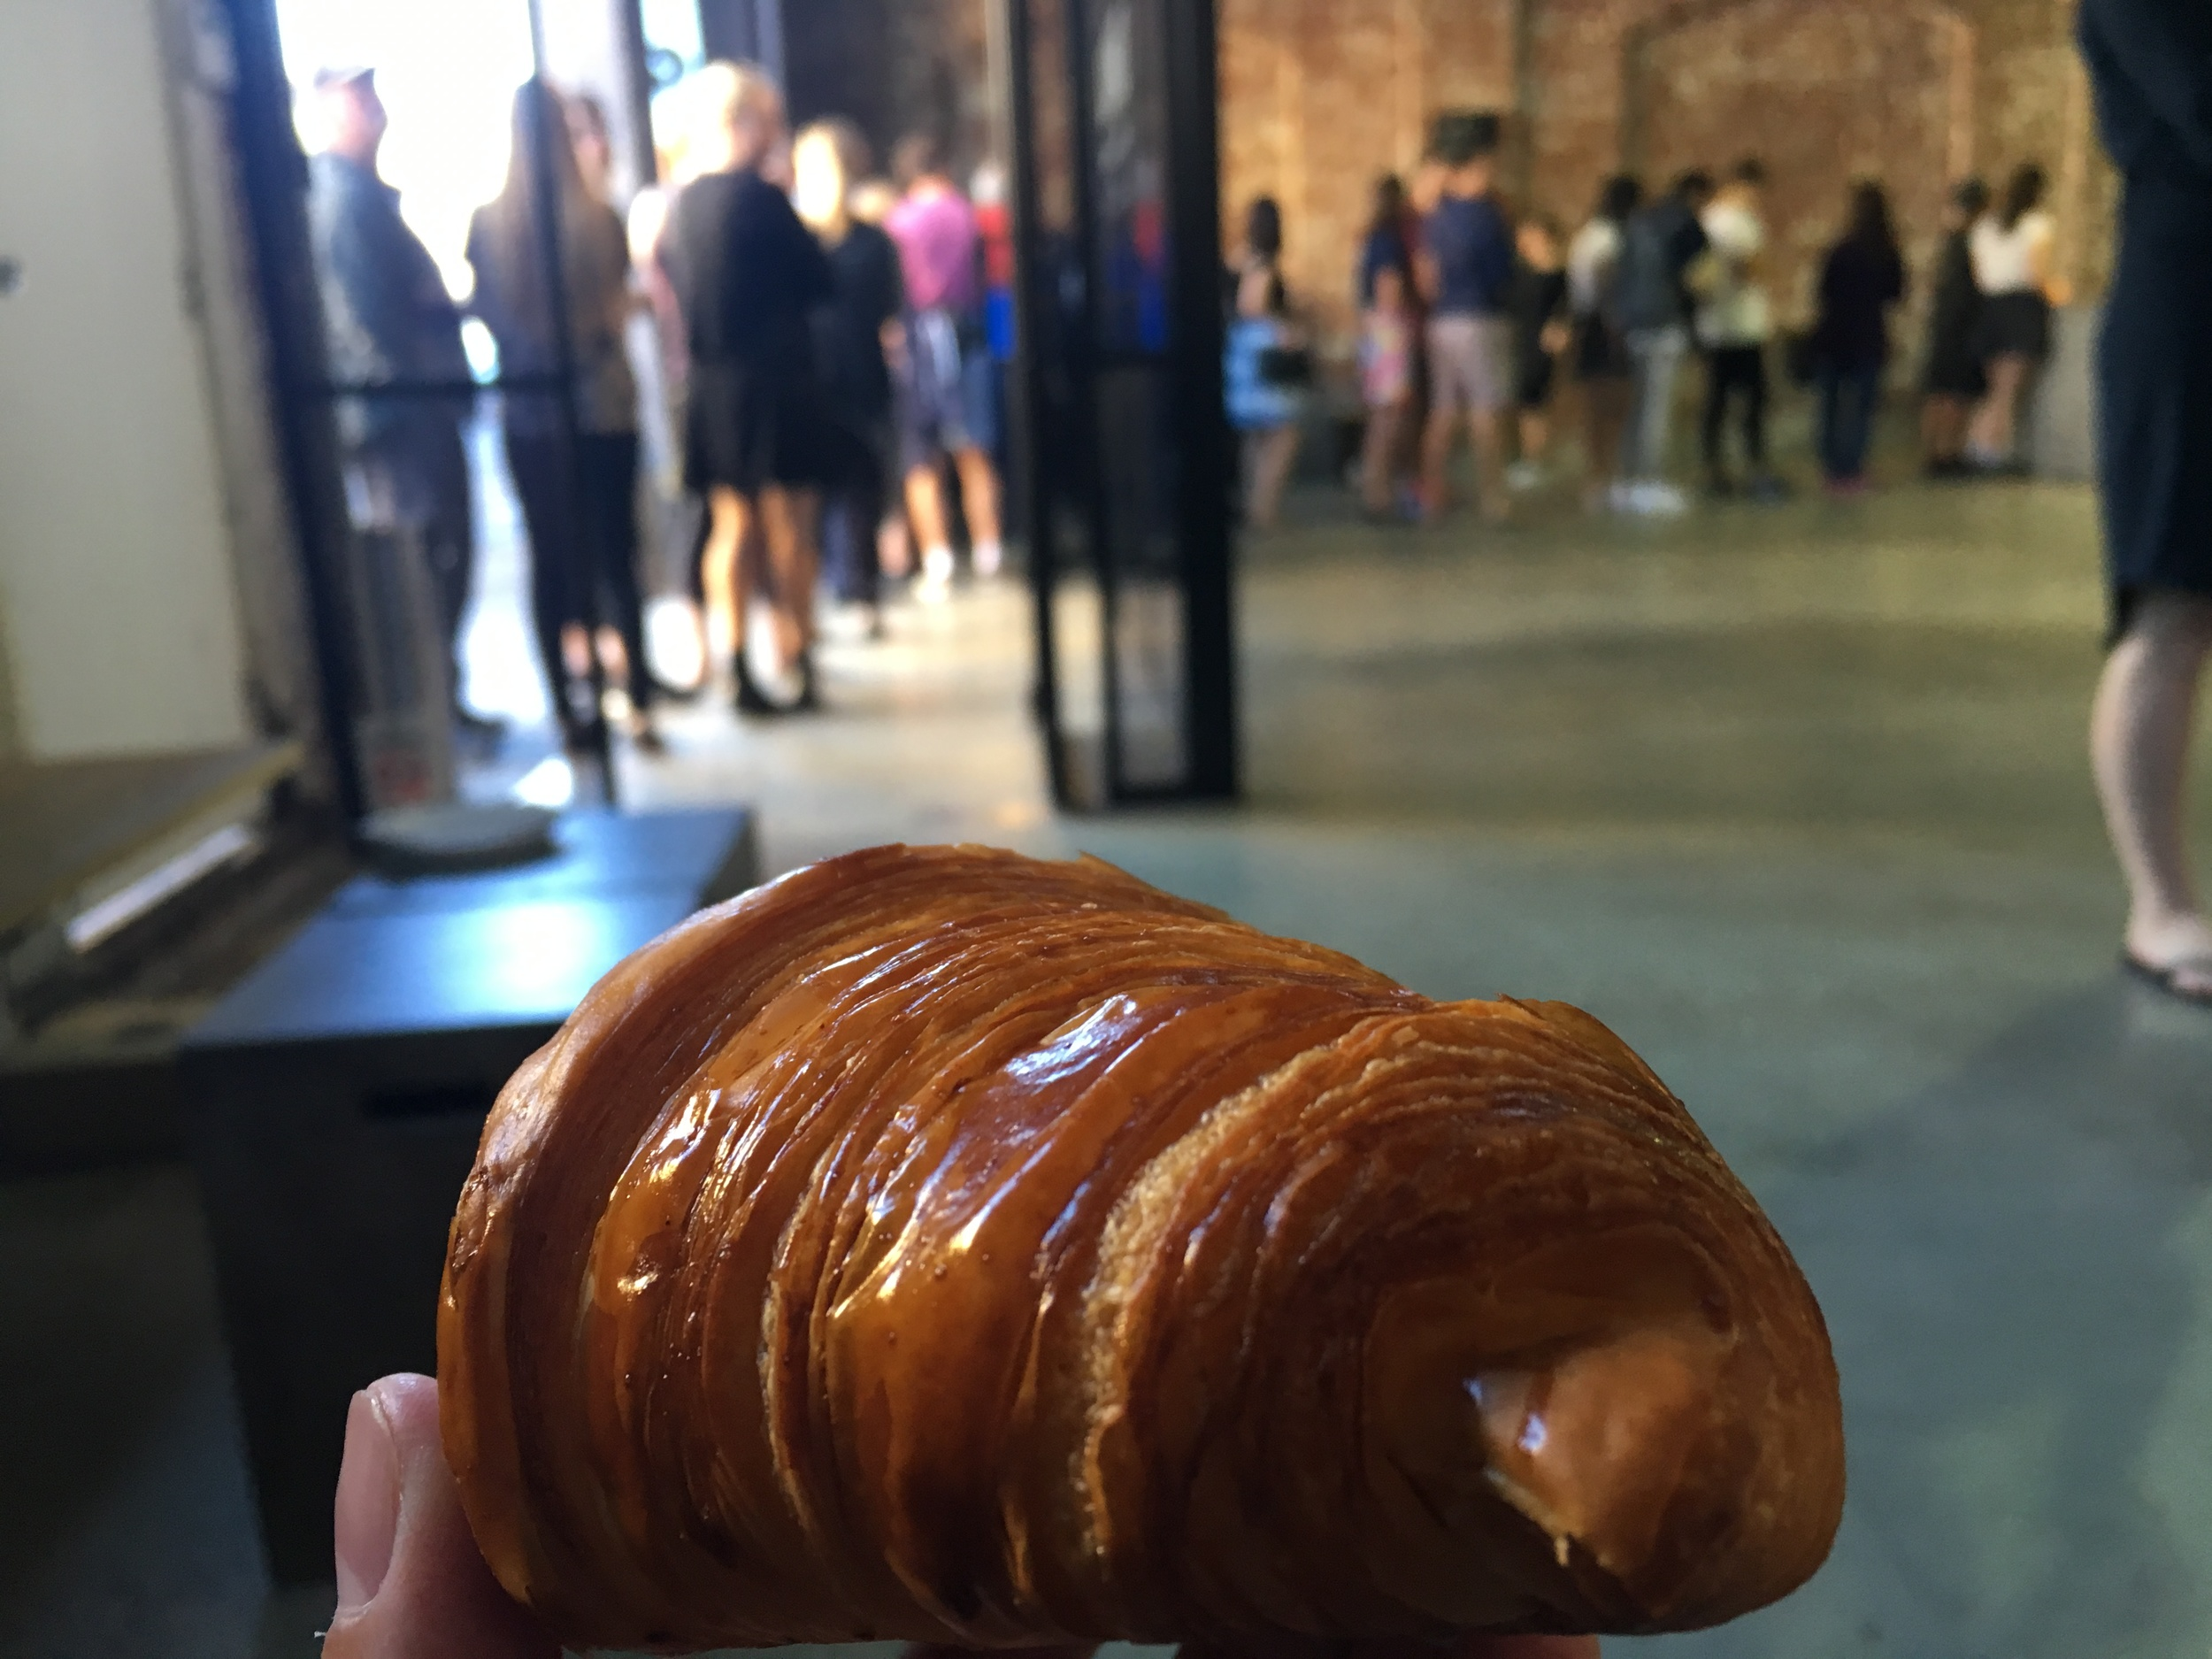 Best croissant in the world? (according to the NYTimes)